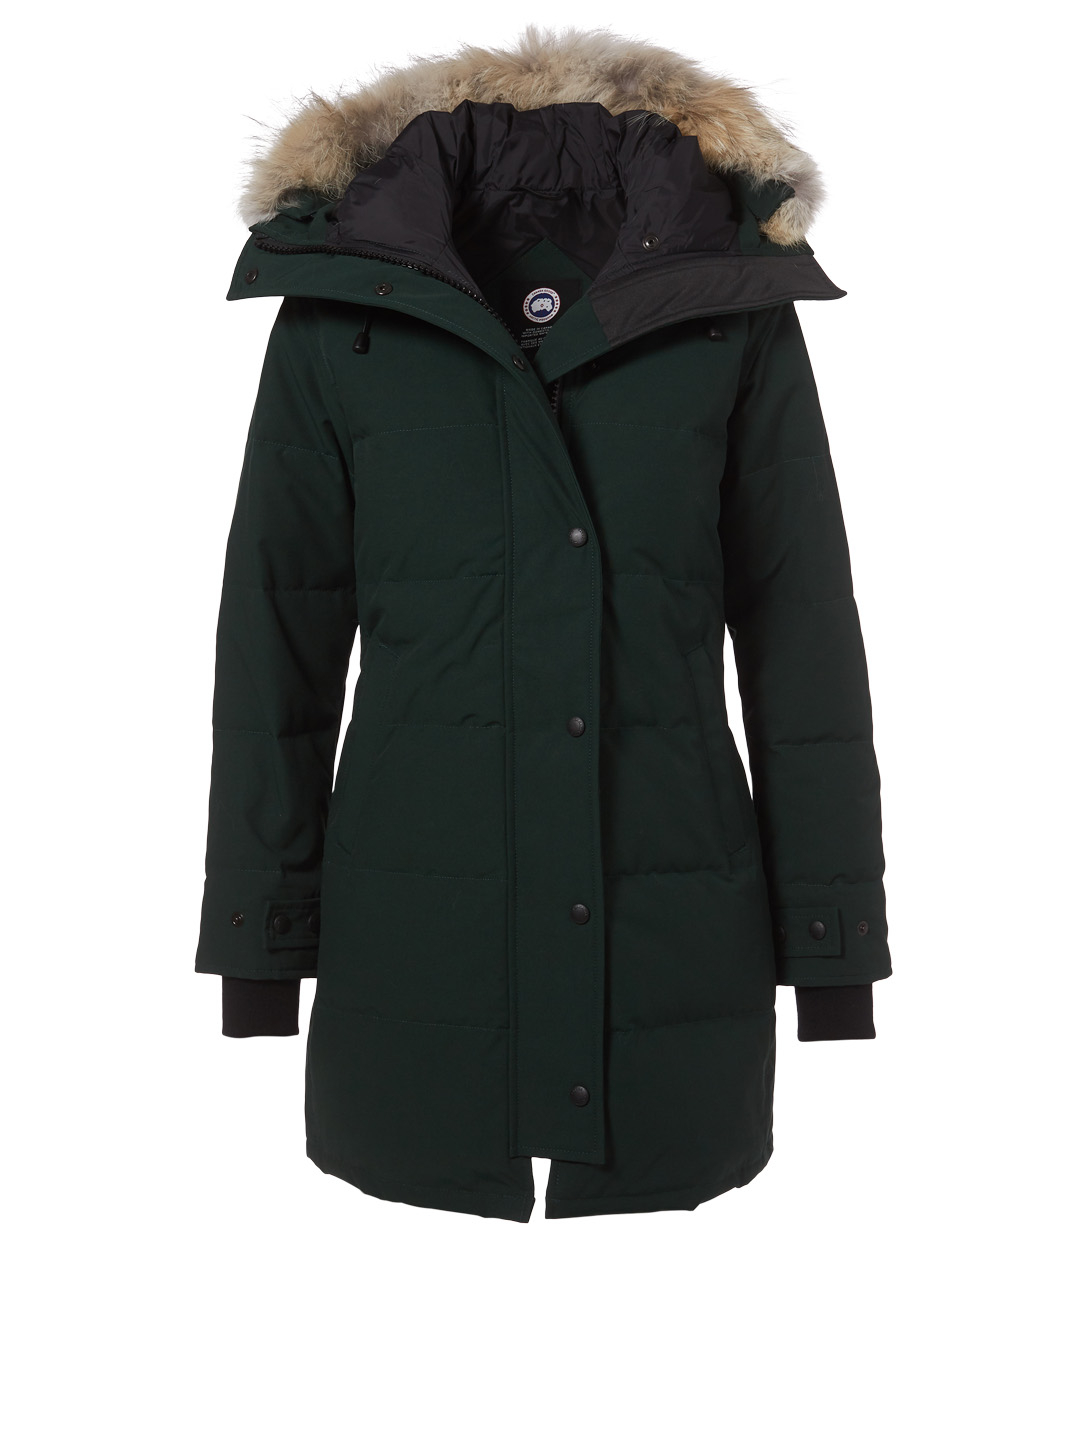 CANADA GOOSE Shelburne Down Parka With Fur - Fusion Fit Womens Green ... 5626b0eea1